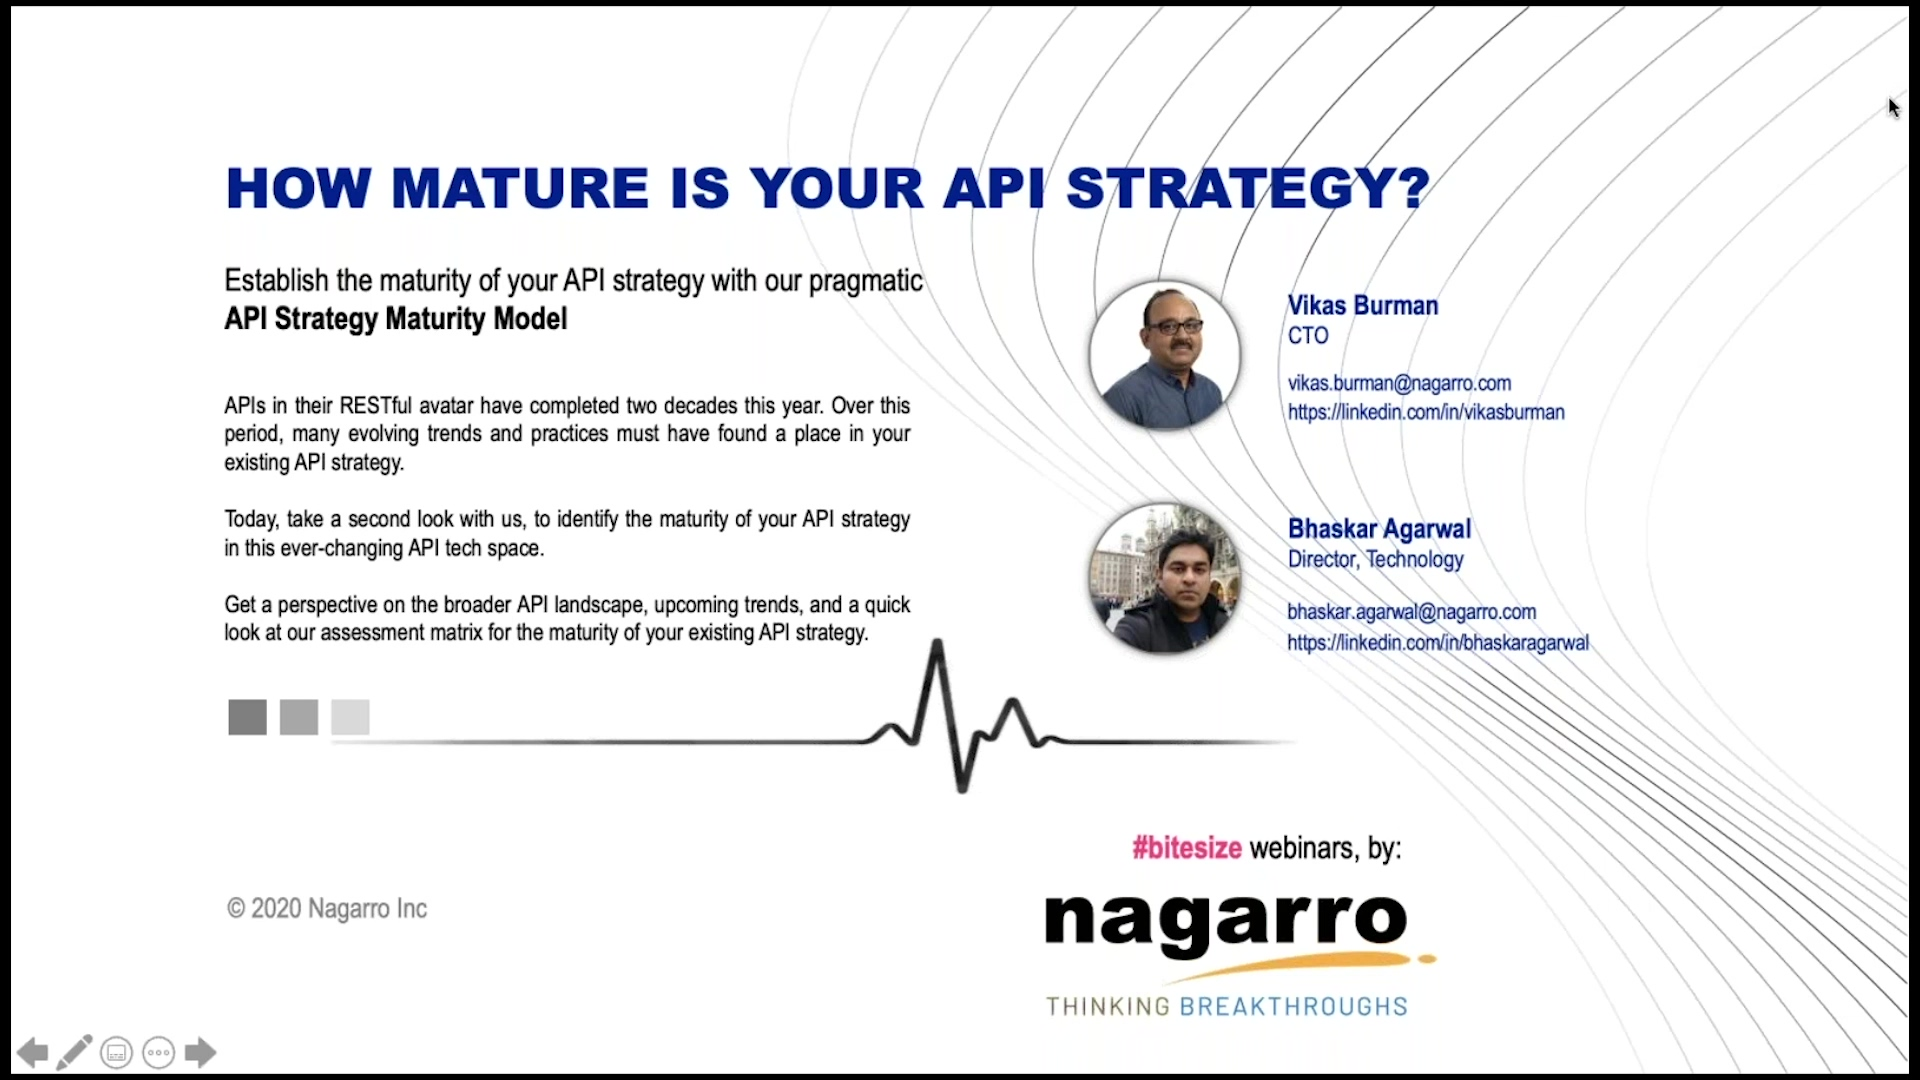 HOW MATURE IS YOUR API STRATEGY-1